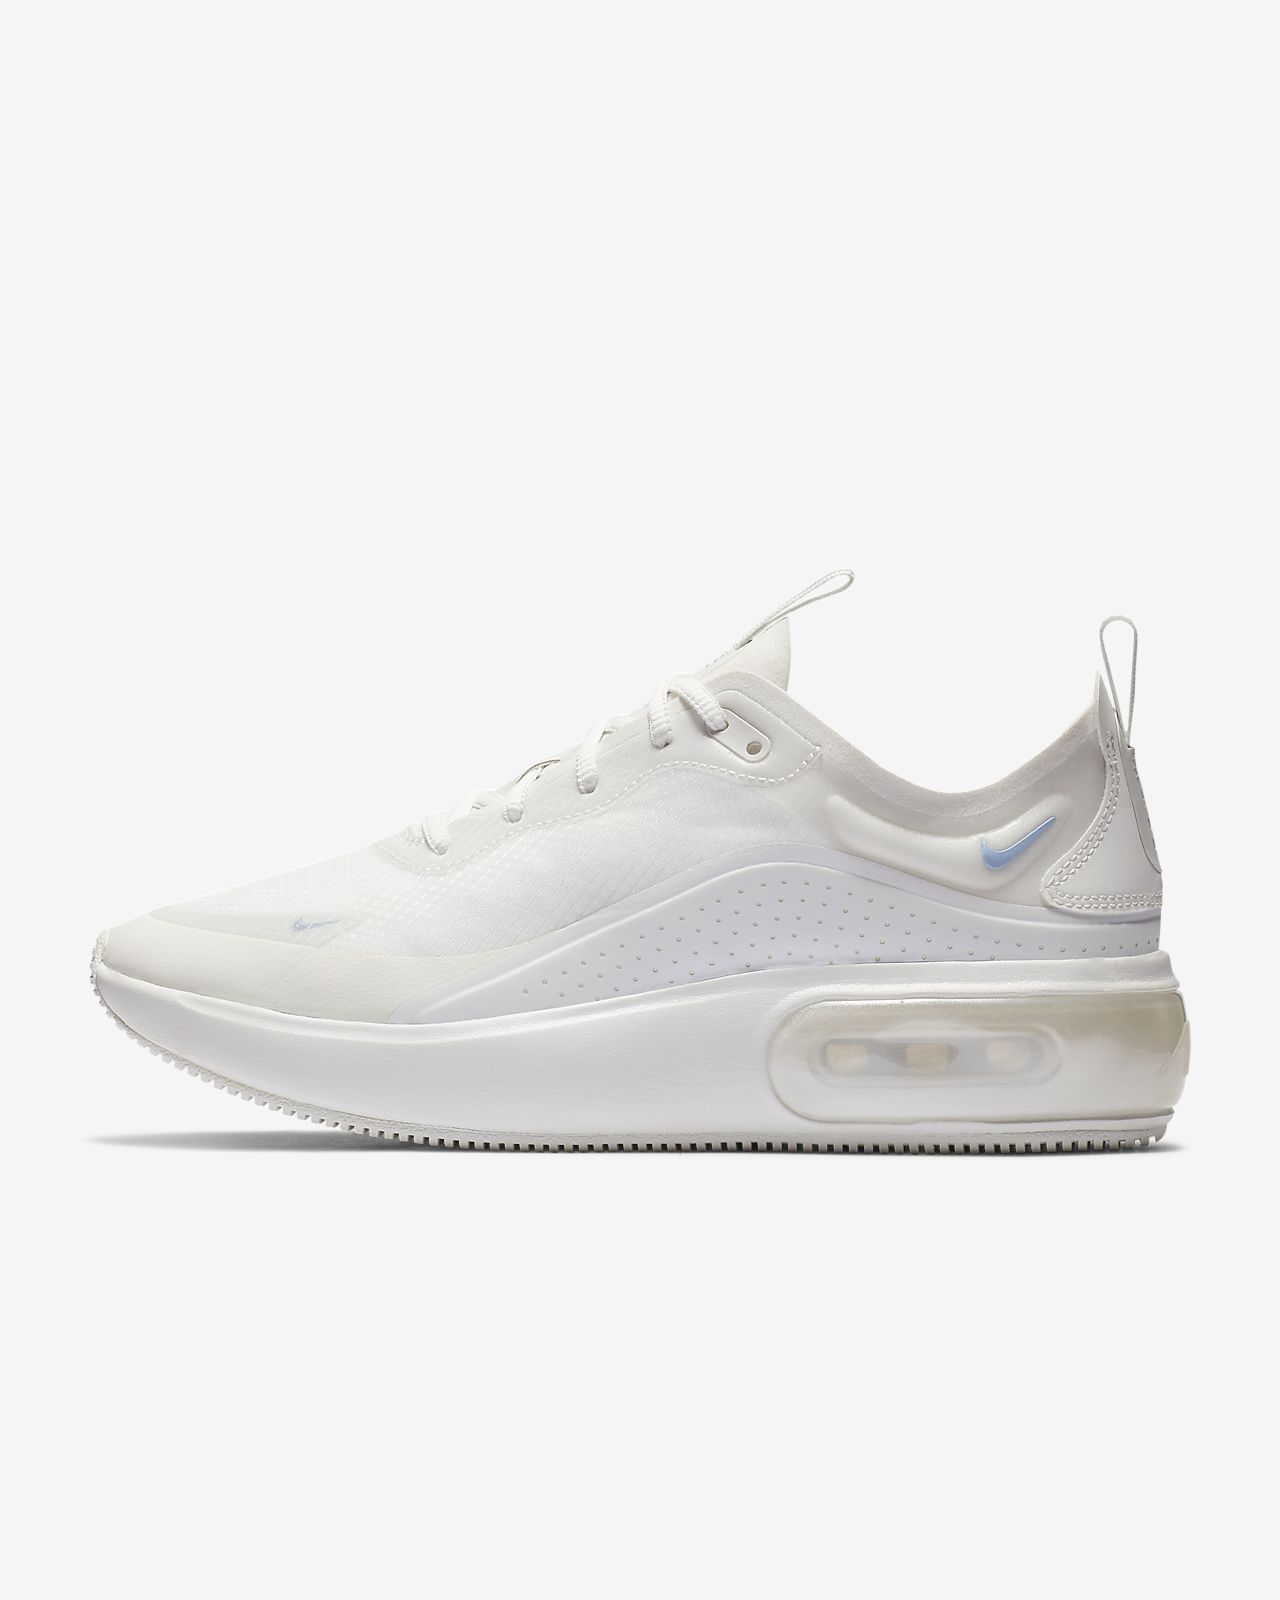 8ced5683f7 Low Resolution Scarpa Nike Air Max Dia SE Scarpa Nike Air Max Dia SE